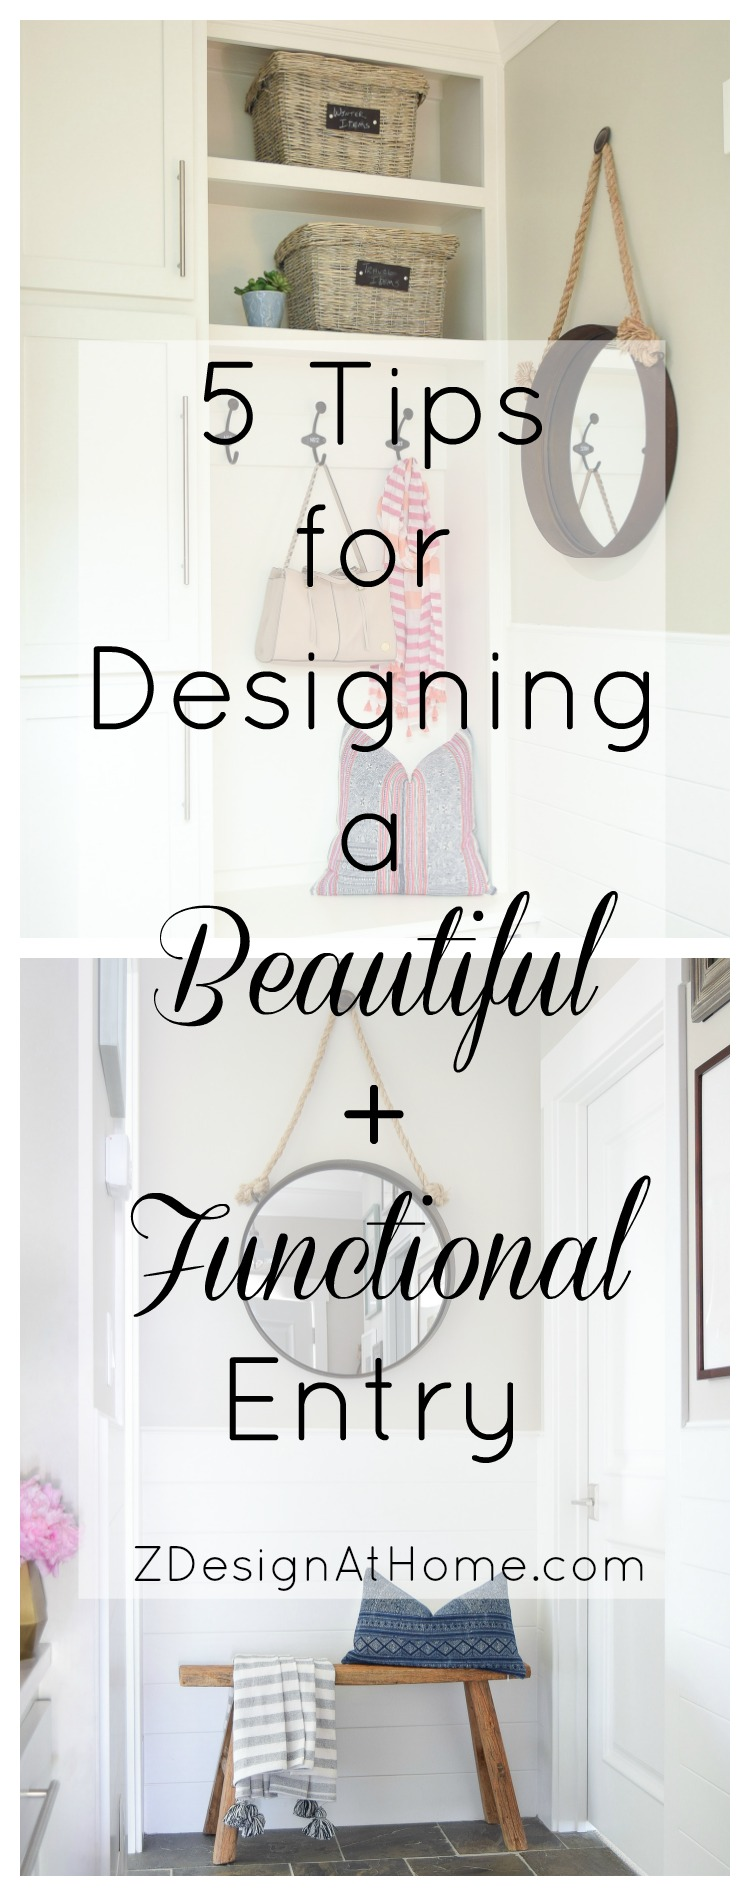 ZDesign At Home 5 Tips for a Beautiful and Functional Entry